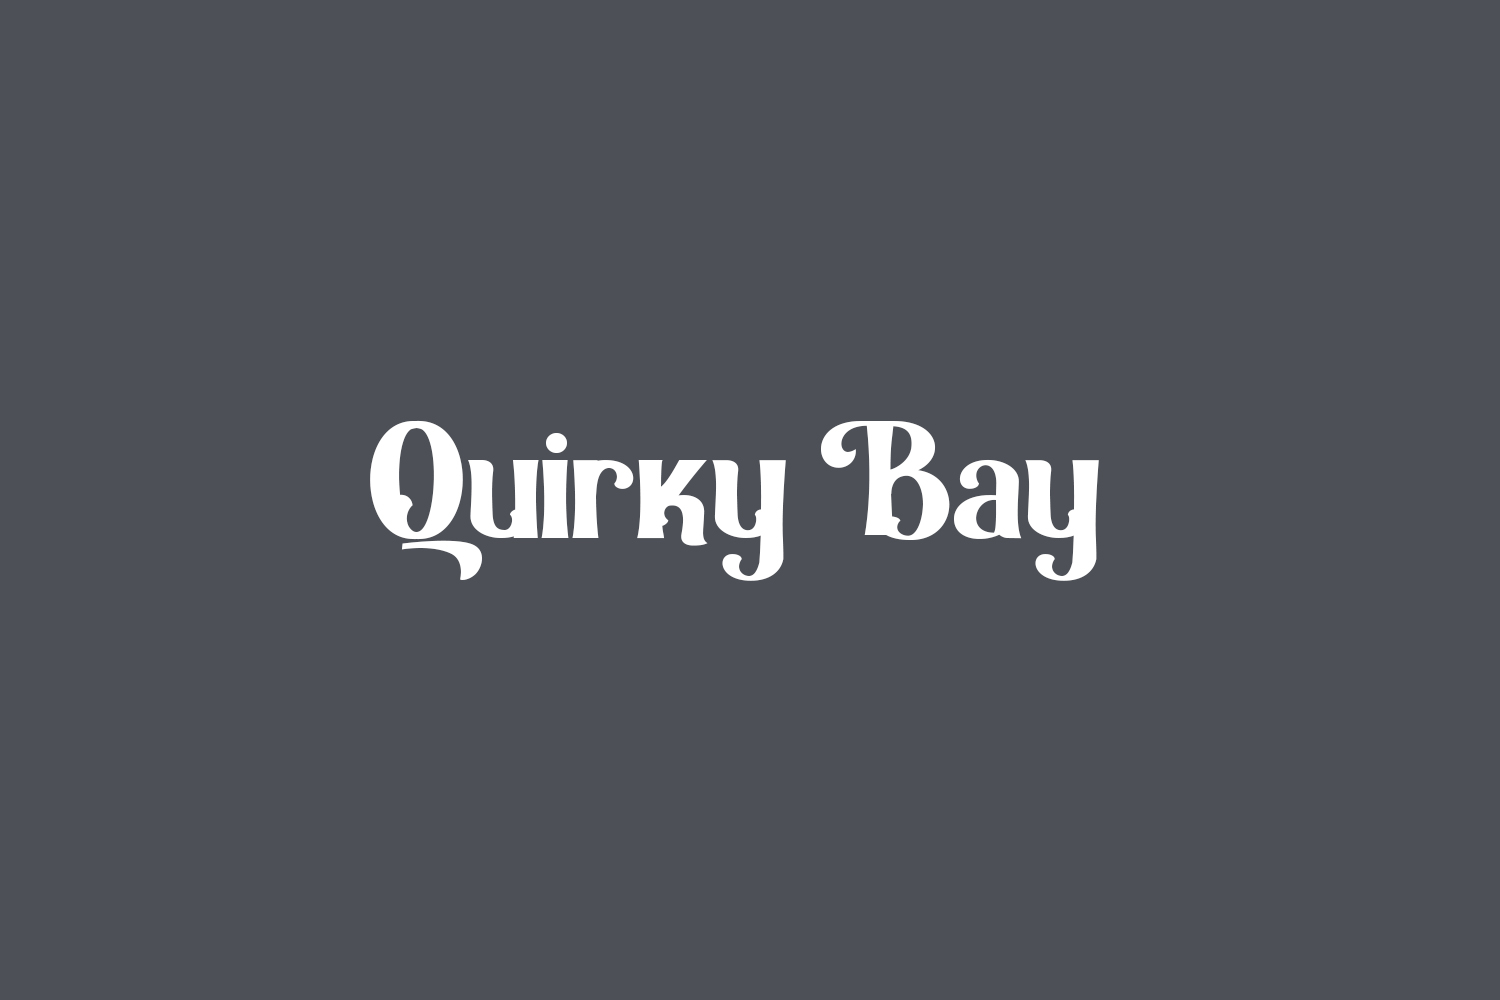 Quirky Bay Free Font